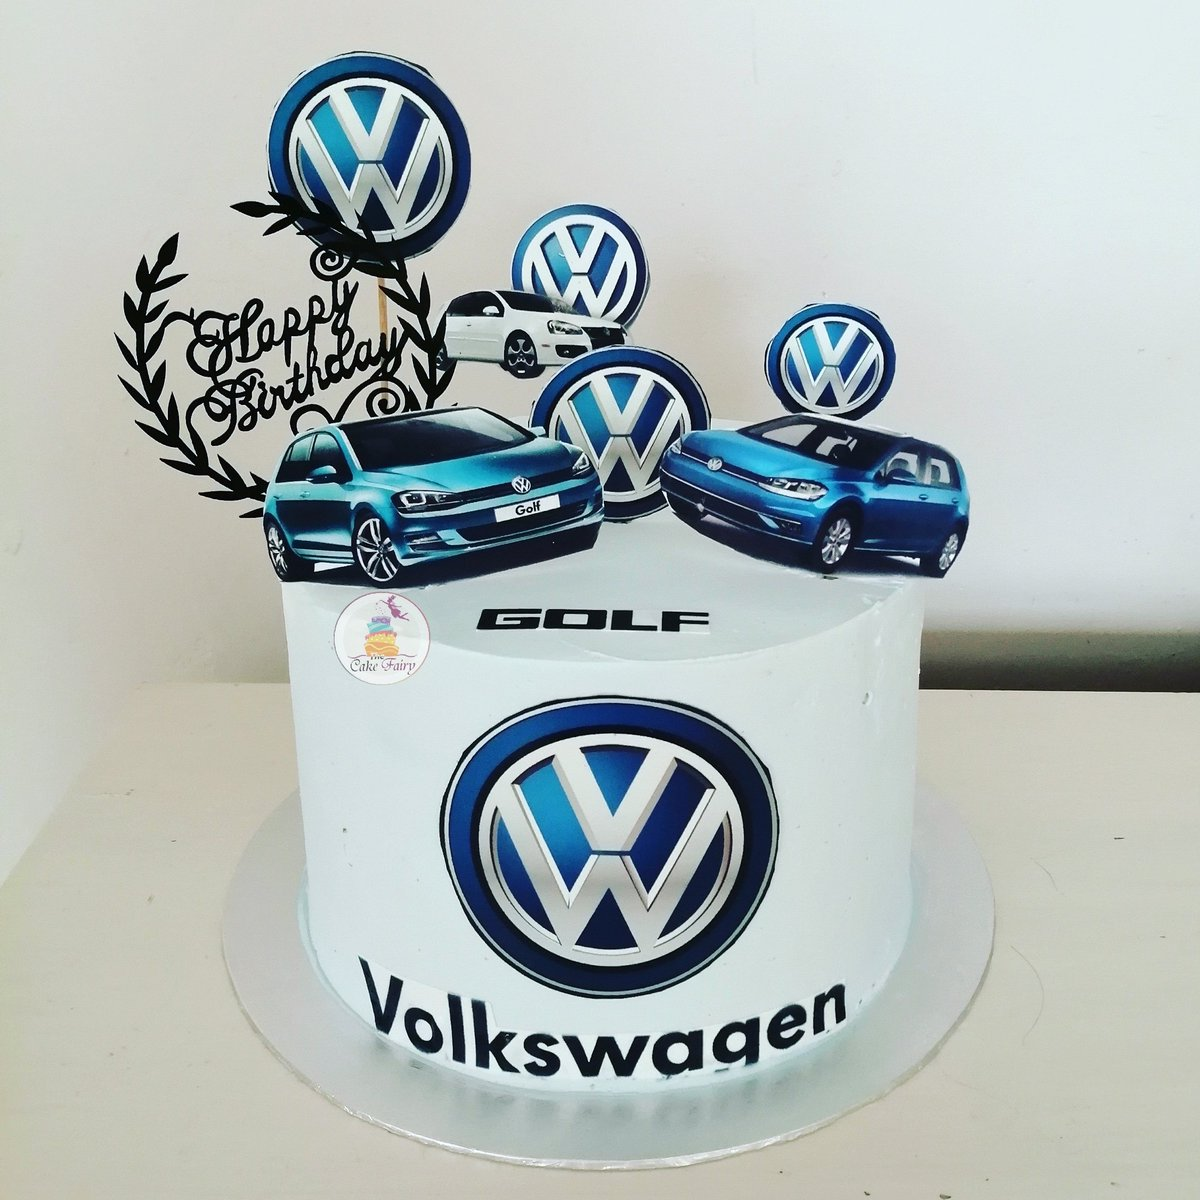 The Cake Fairy Mw On Twitter Happy New Week Guys Volkswagen Waystoappreciateyourman Thecakefairymw Call Or Whatsapp 0995193492 0881139922 For Customised Theme Cakes Https T Co Ggaogwkij0